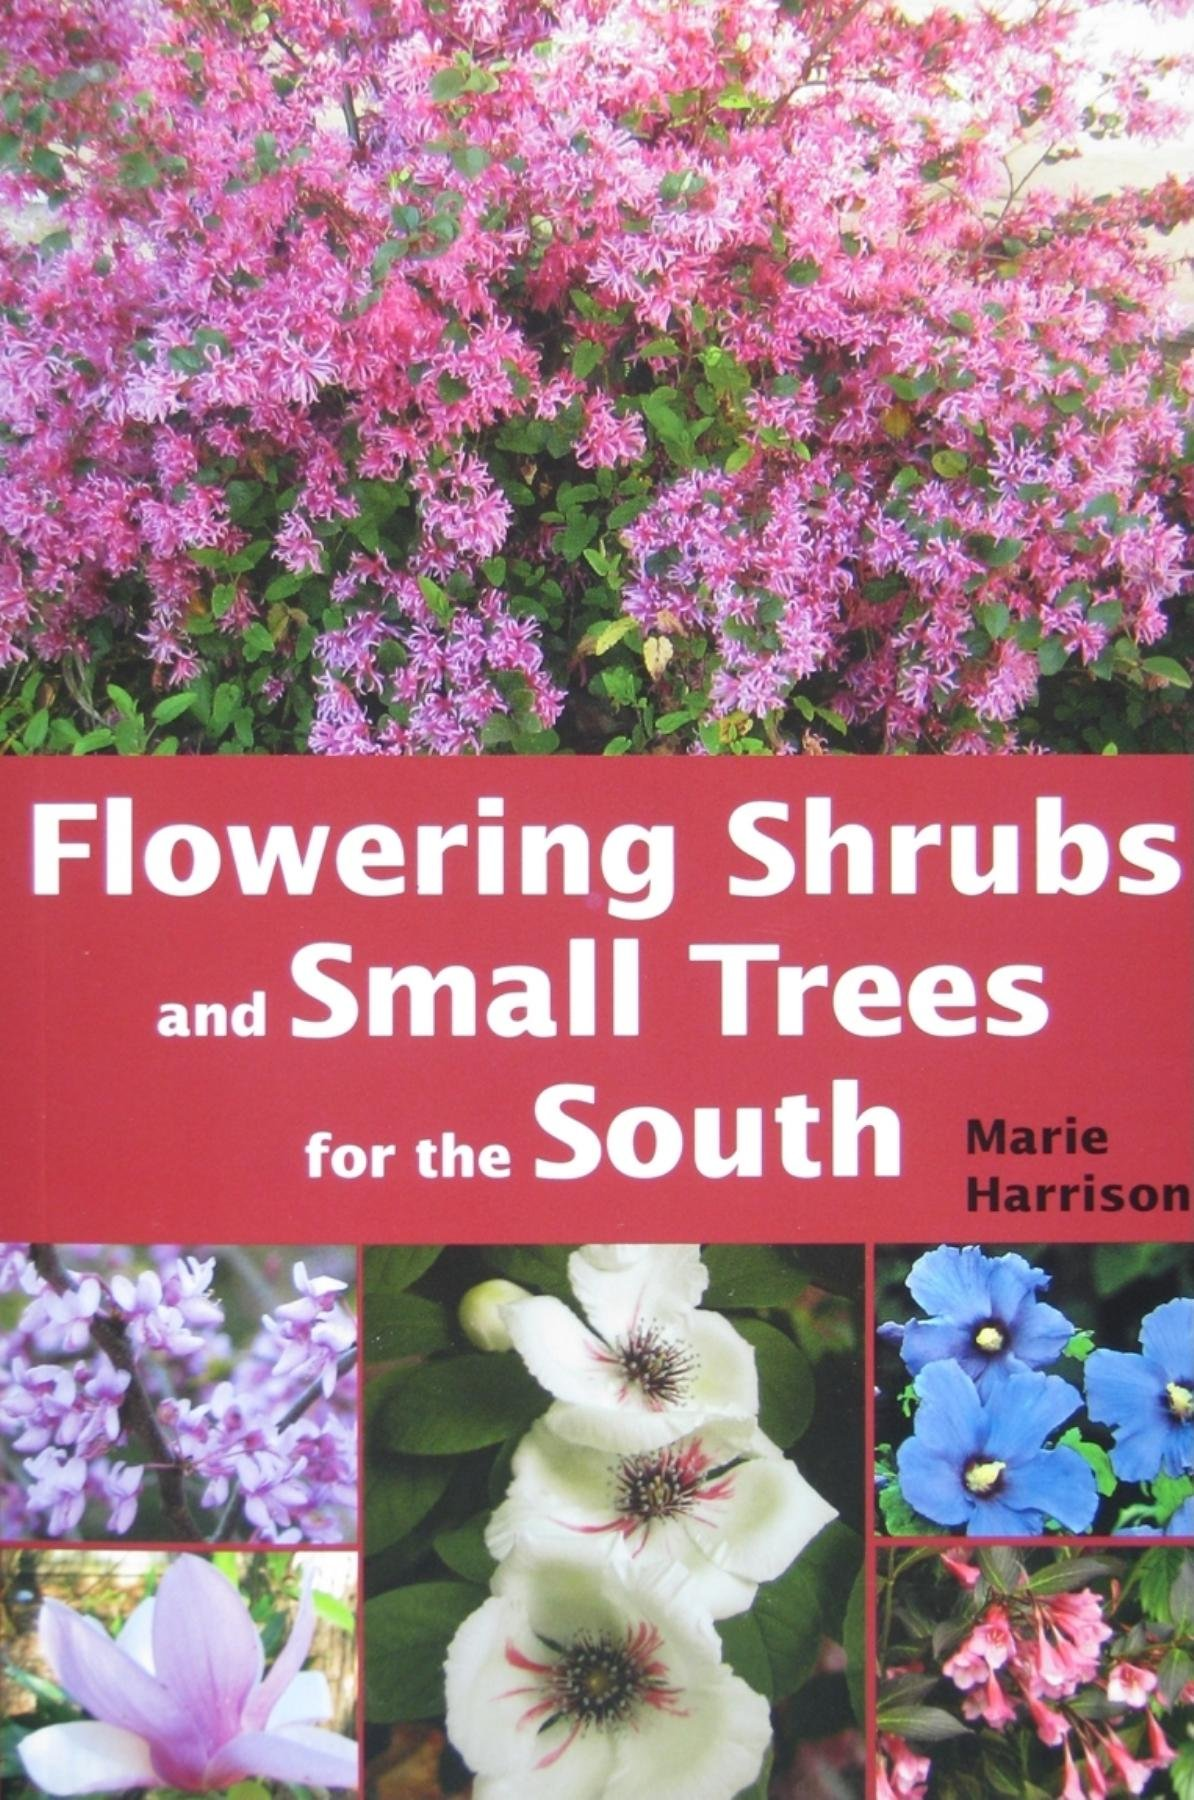 Flowering shrubs and small trees for the south marie harrison flowering shrubs and small trees for the south marie harrison 9781561644391 amazon books izmirmasajfo